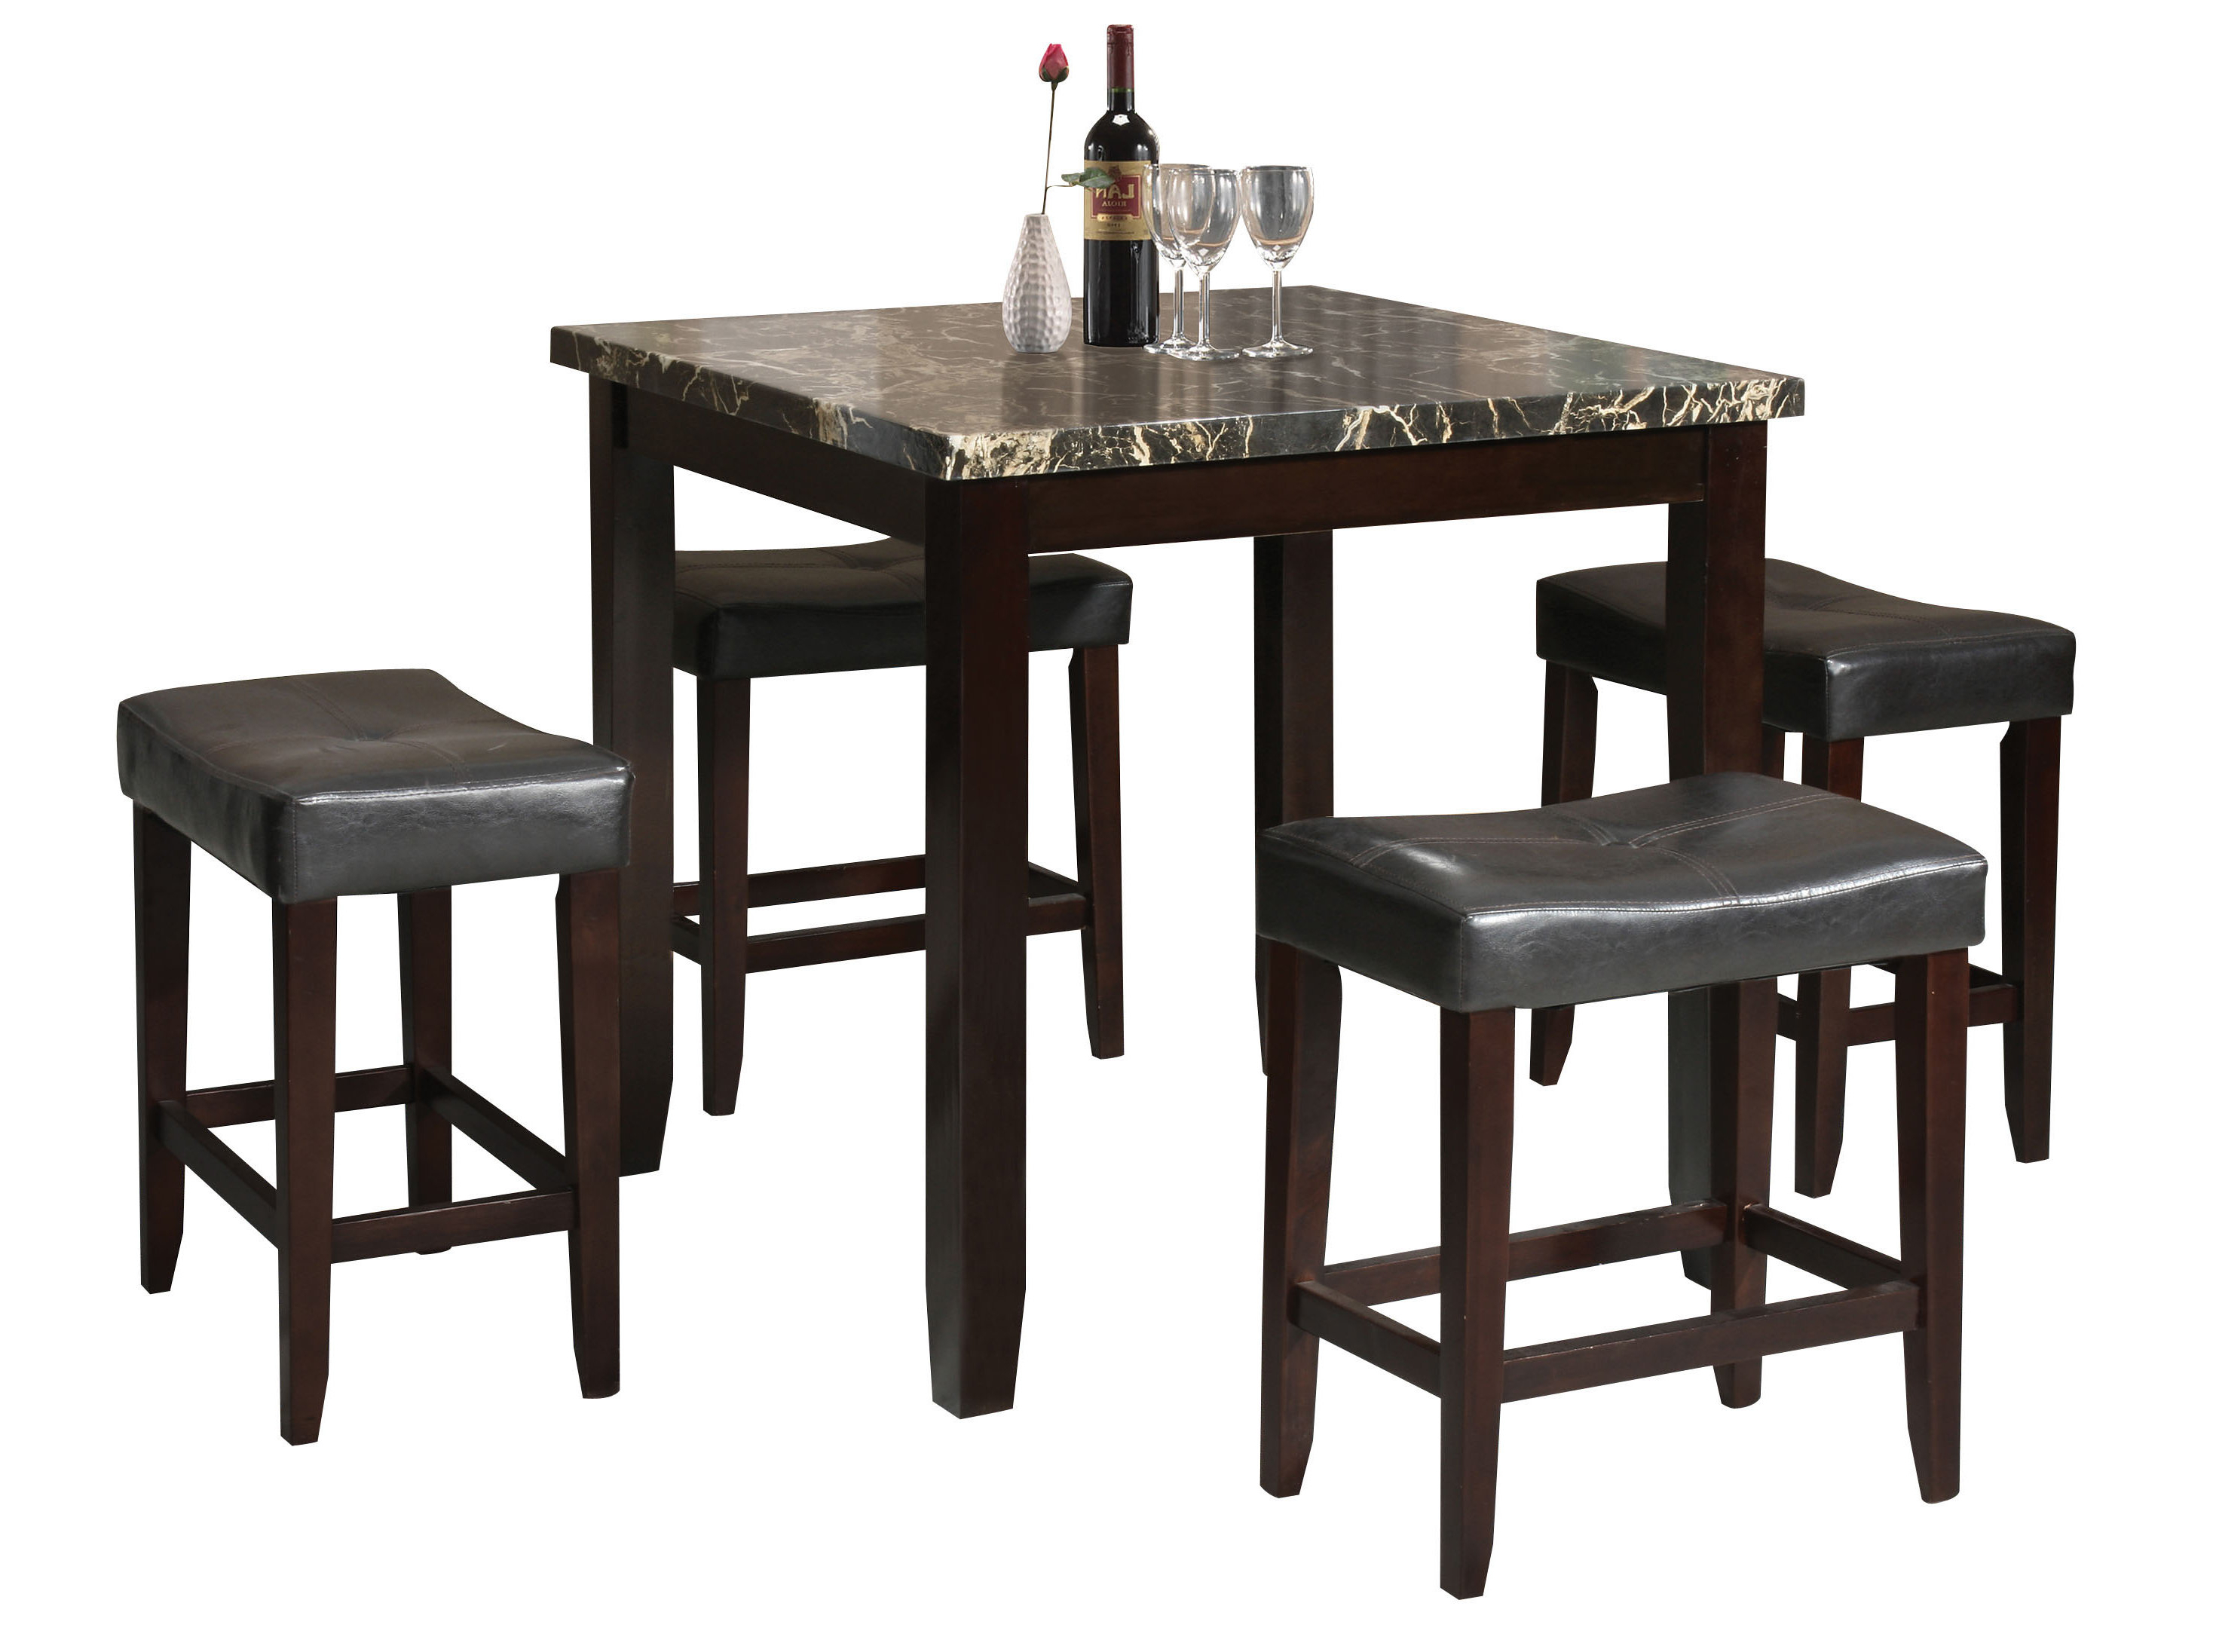 Joss & Main In Widely Used Tenney 3 Piece Counter Height Dining Sets (View 6 of 25)